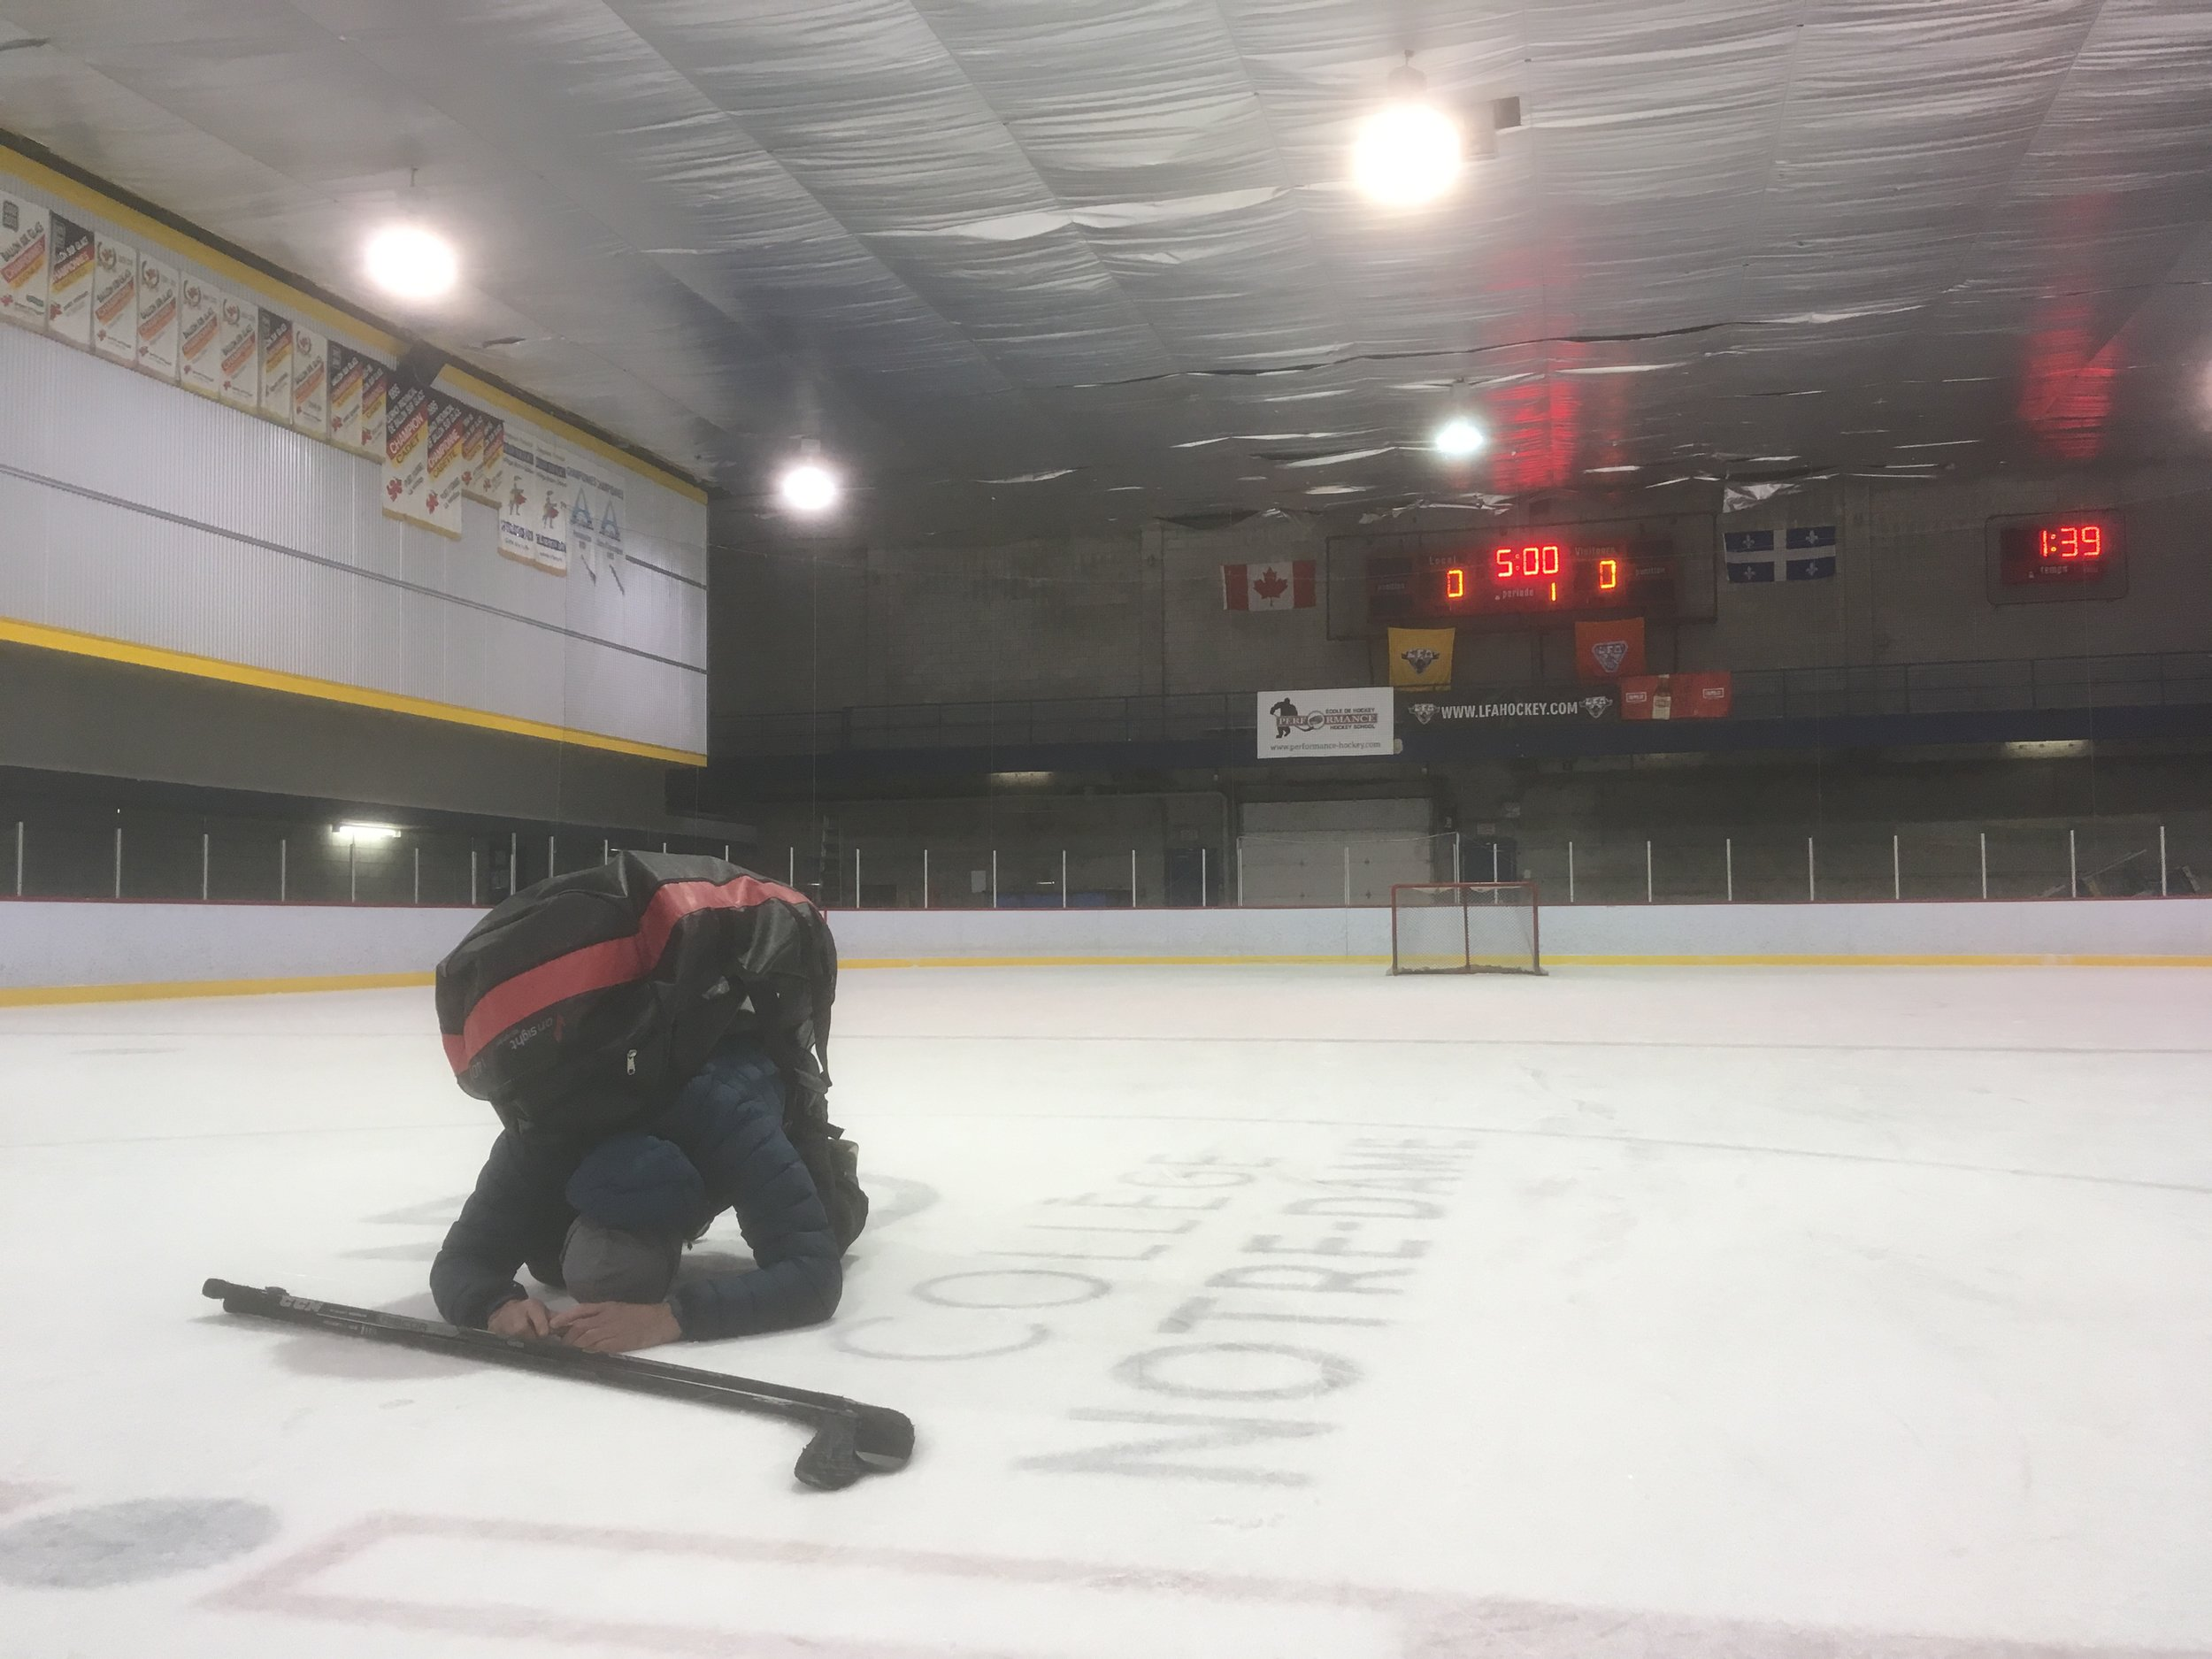 The Vipers, michael wees last Saturday before his game, calling on the spirits of the hockey gods for a needed victory. Better luck next year buddy, but nice try! (JFD photo)